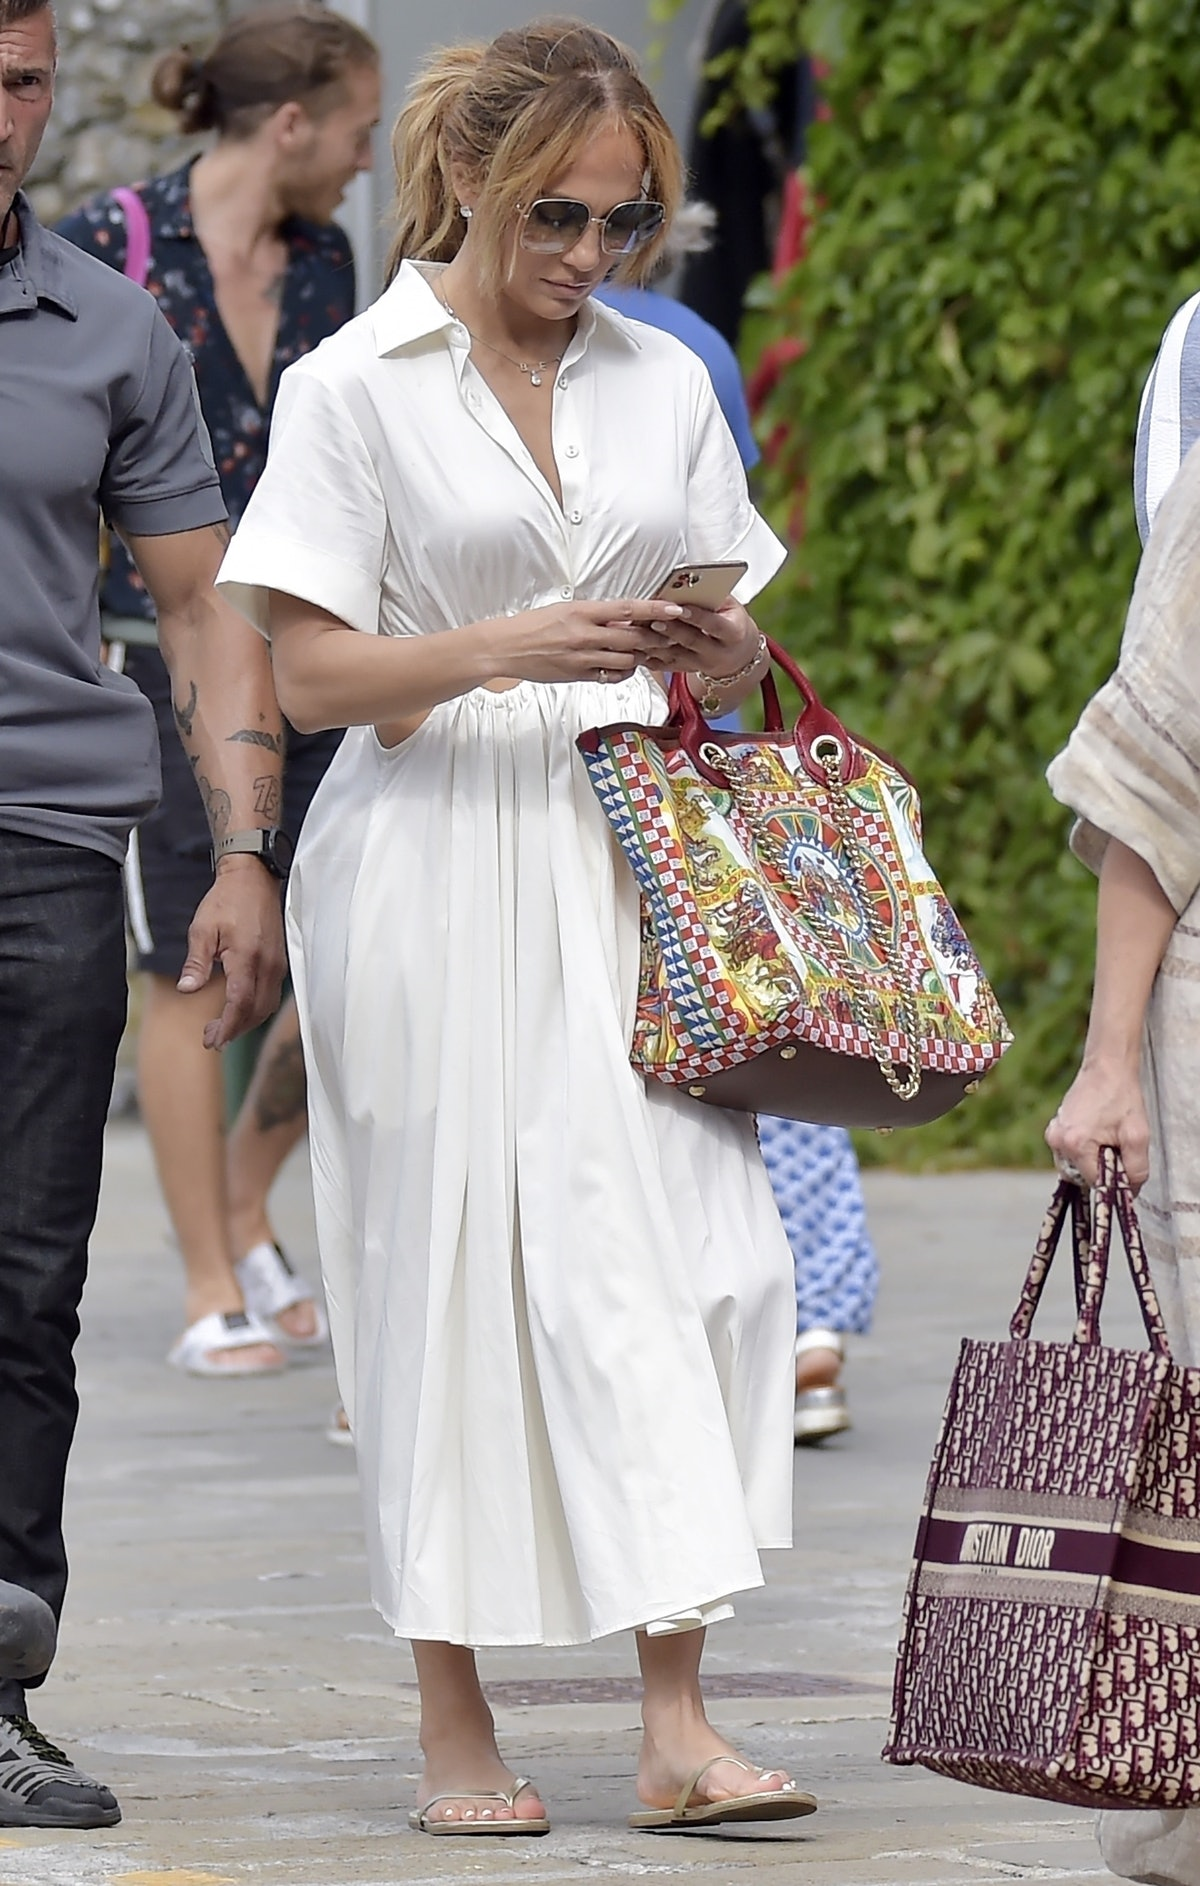 Jennifer Lopez wearing a white dress, gold flip-flops, and carrying a printed, embroidered tote bag.